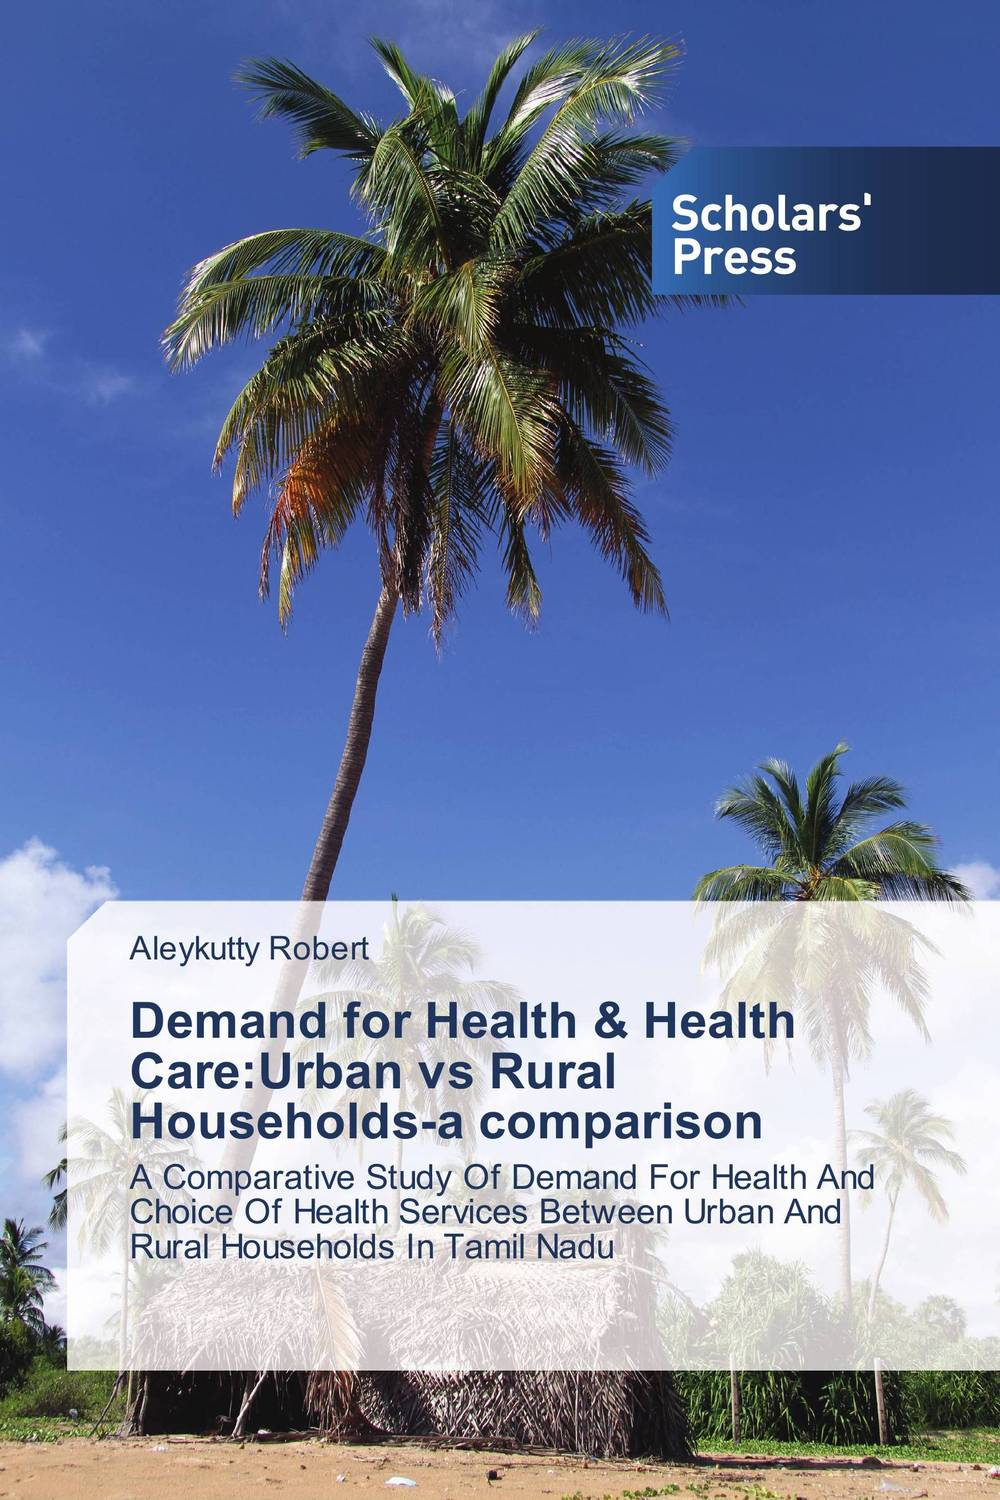 Demand for Health & Health Care:Urban vs Rural Households-a comparison